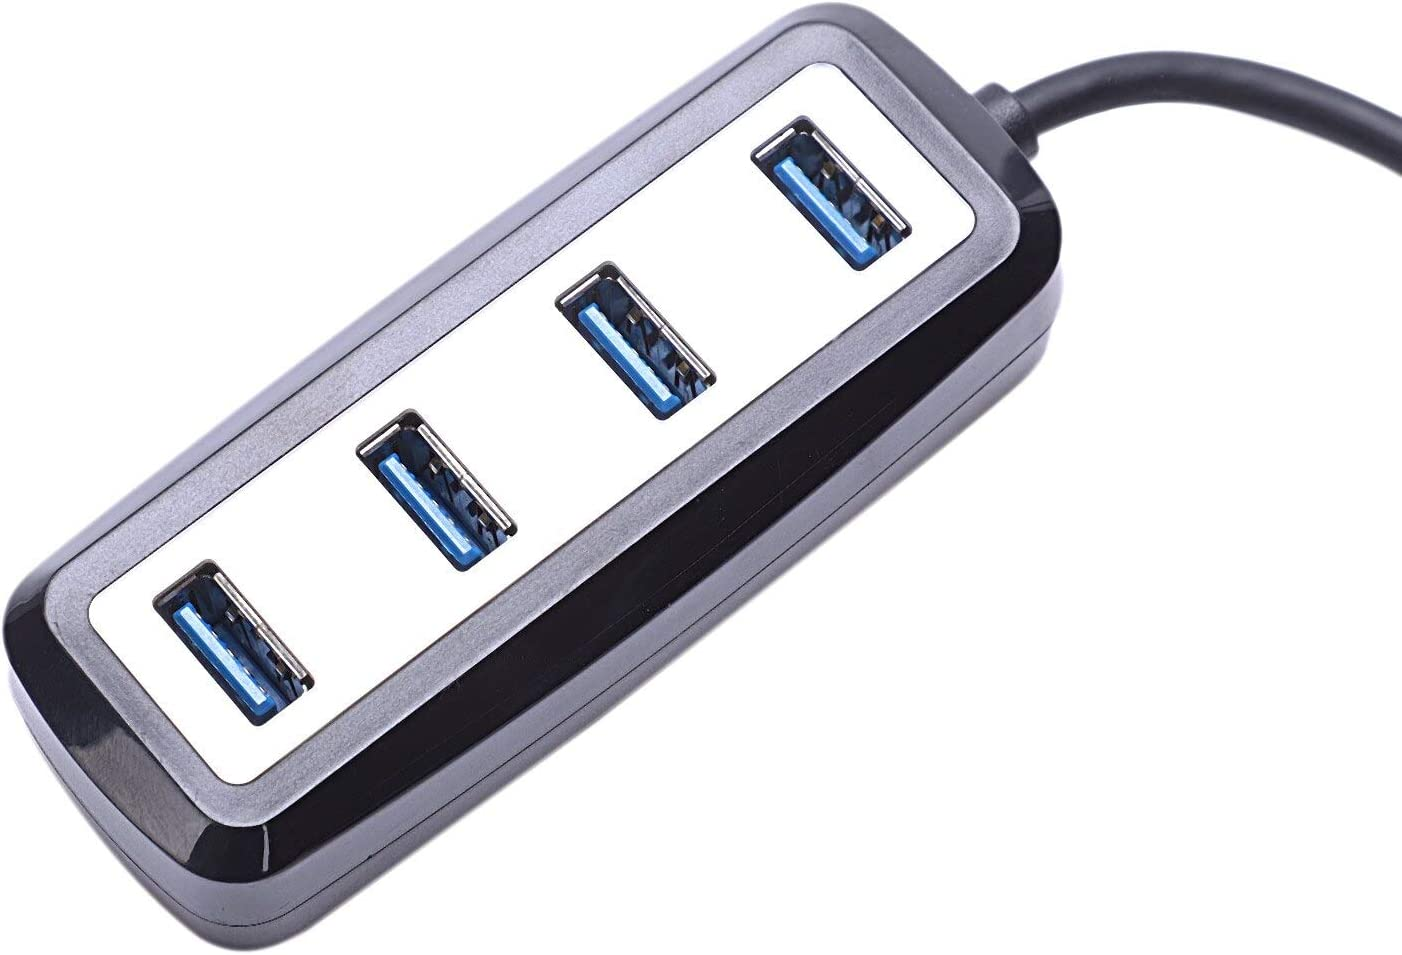 Cables 4-Port USB 3.0 Hub Splitter High Speed Date Transfer Adapter for Pc Laptop Smart Phone Accessories Cable Length: 0.25m, Color: Black